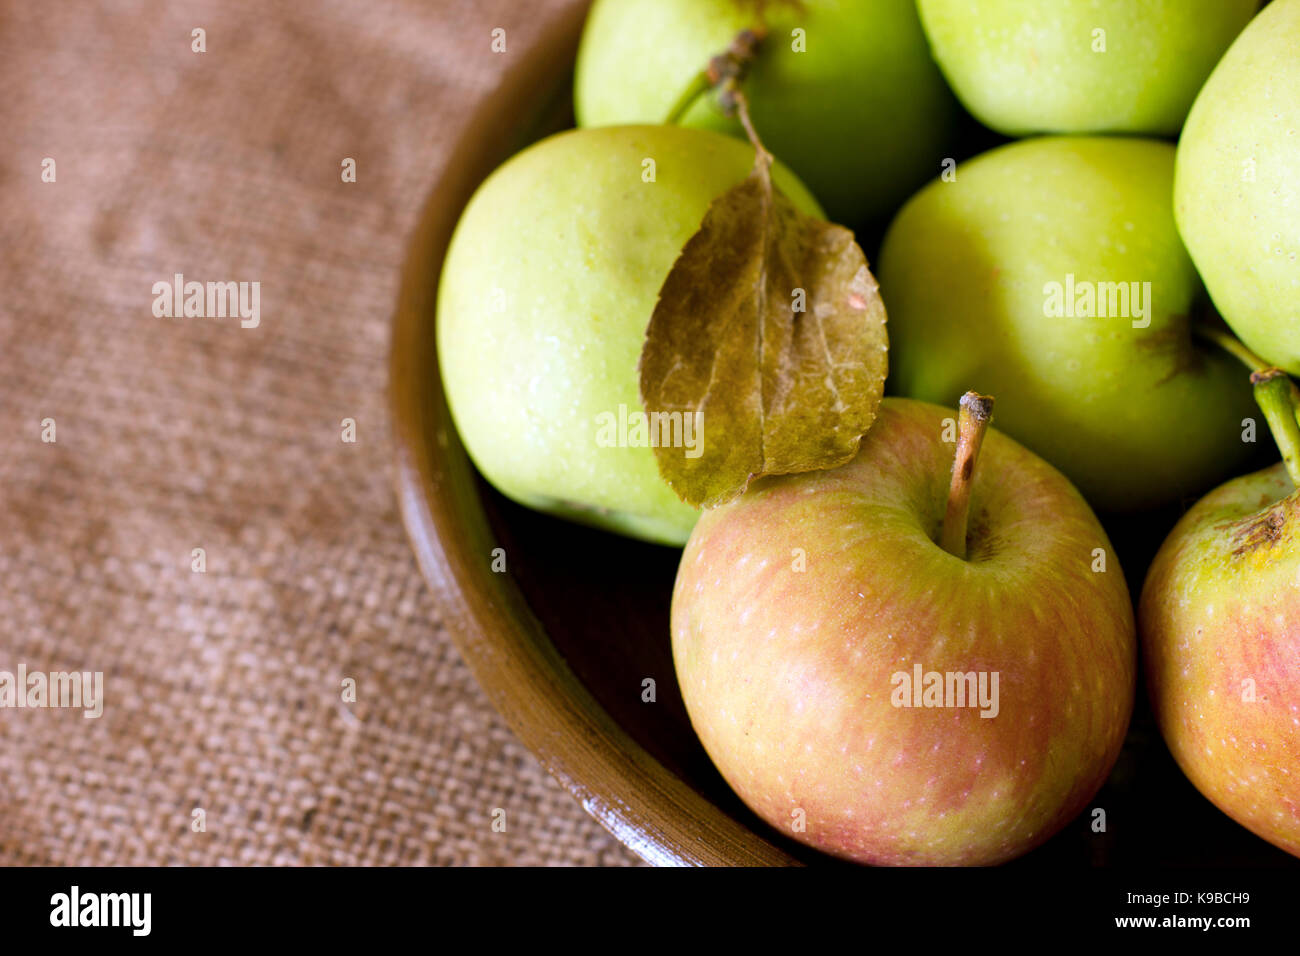 Green and red garden apples on the clay brown dish - Stock Image